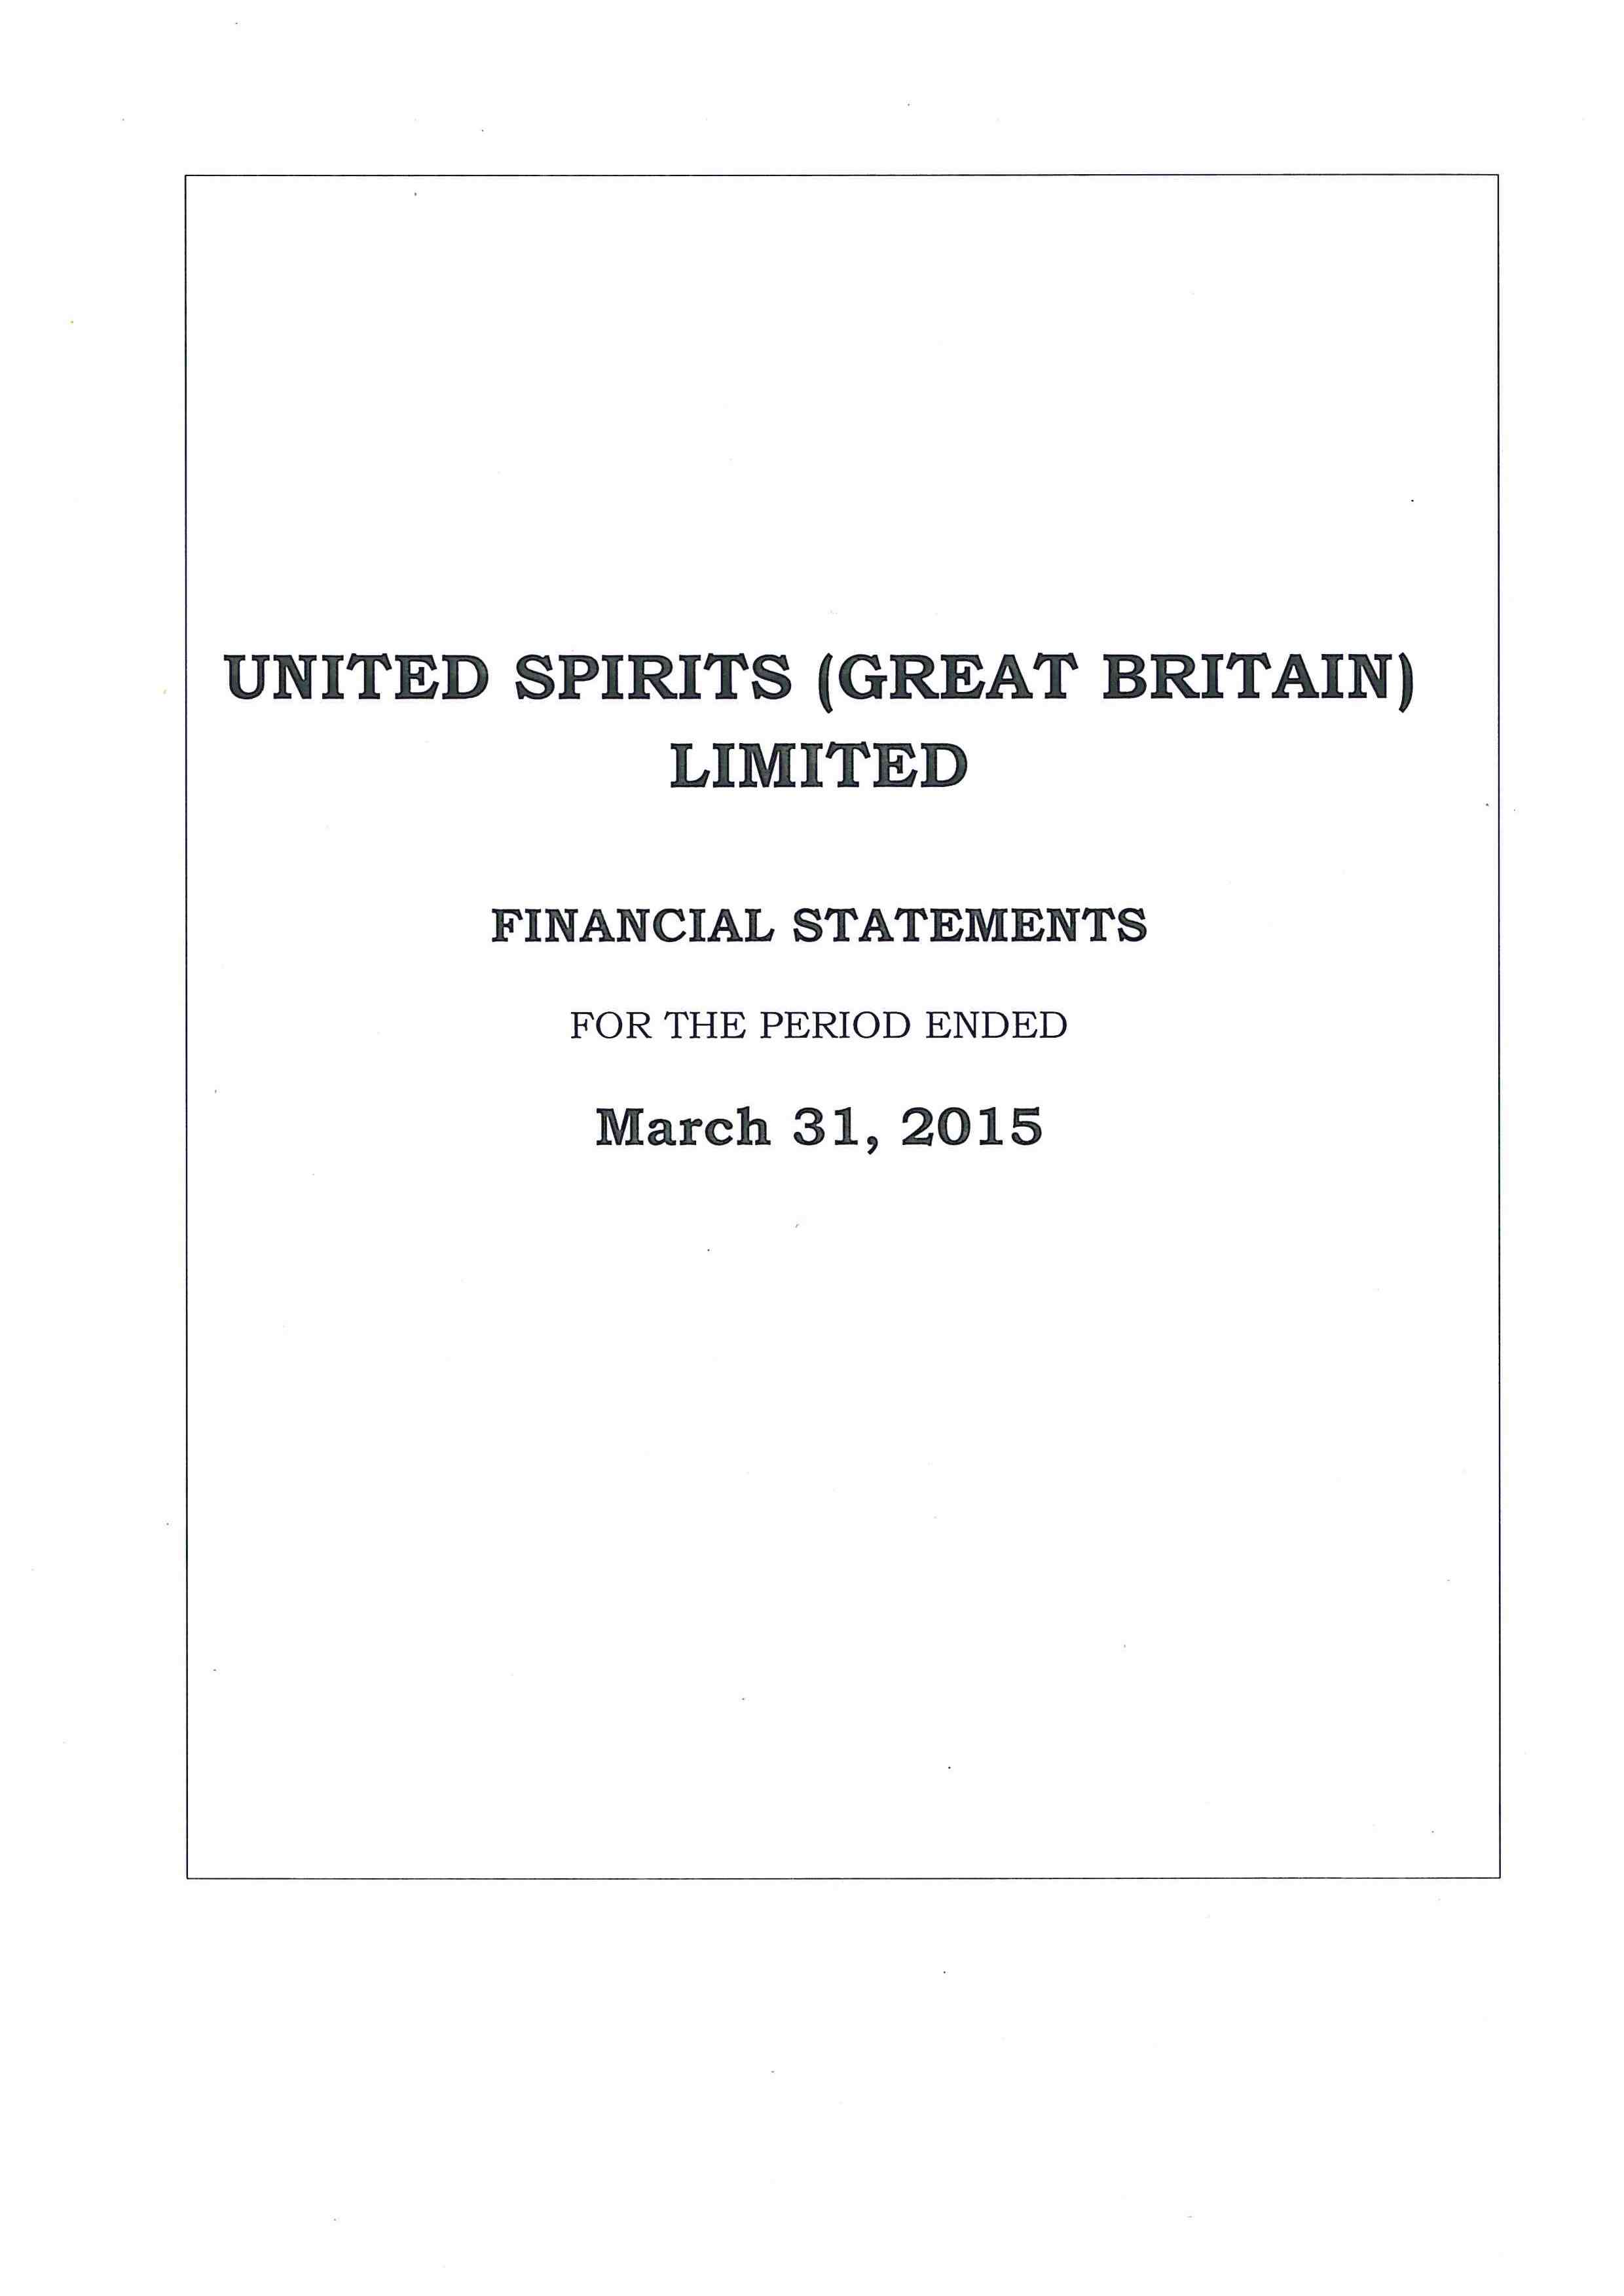 United Spirits (Great Britain) Ltd 2014-2015